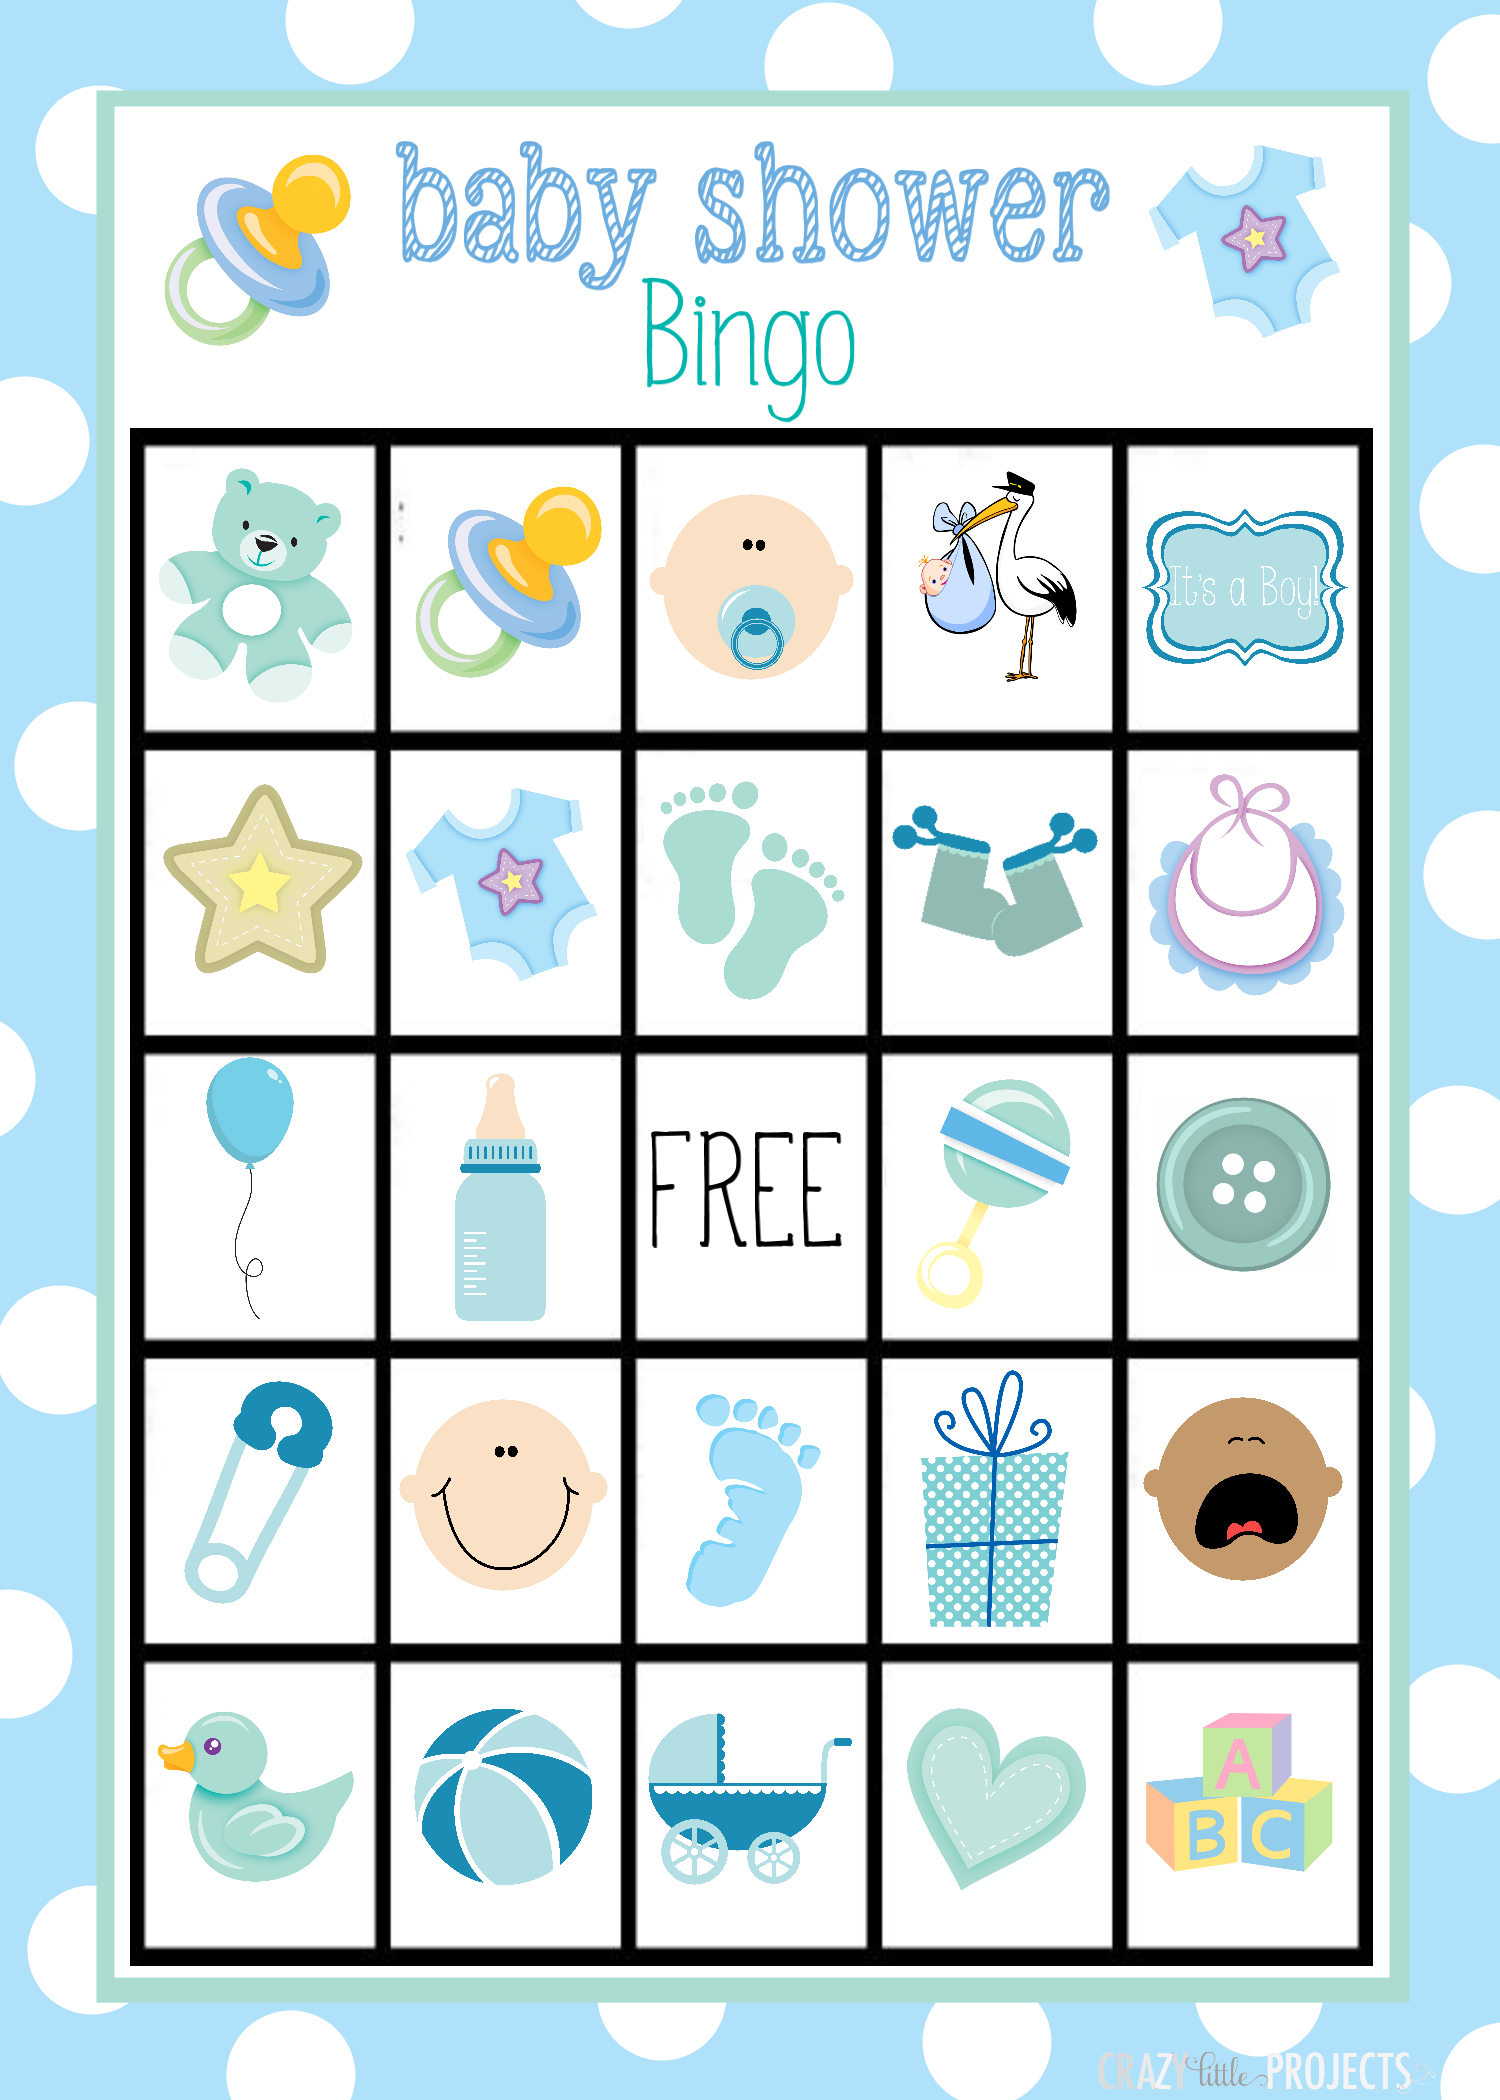 Baby Shower Bingo Cards | Share Your Craft | Baby Shower Bingo, Baby - 50 Free Printable Baby Bingo Cards